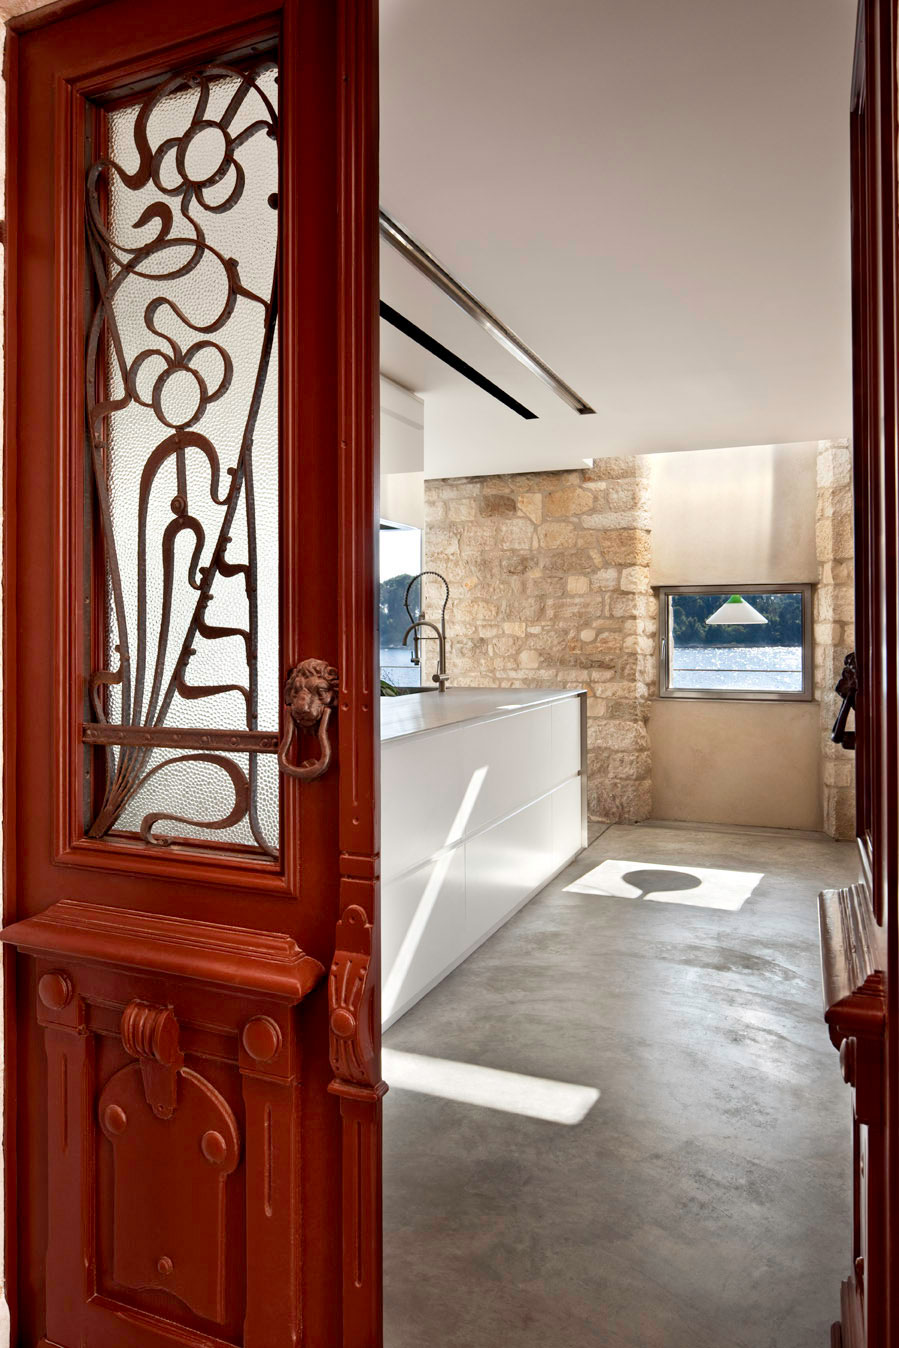 Entrance, Renovation of an 18th Century Building in Rovinj, Croatia